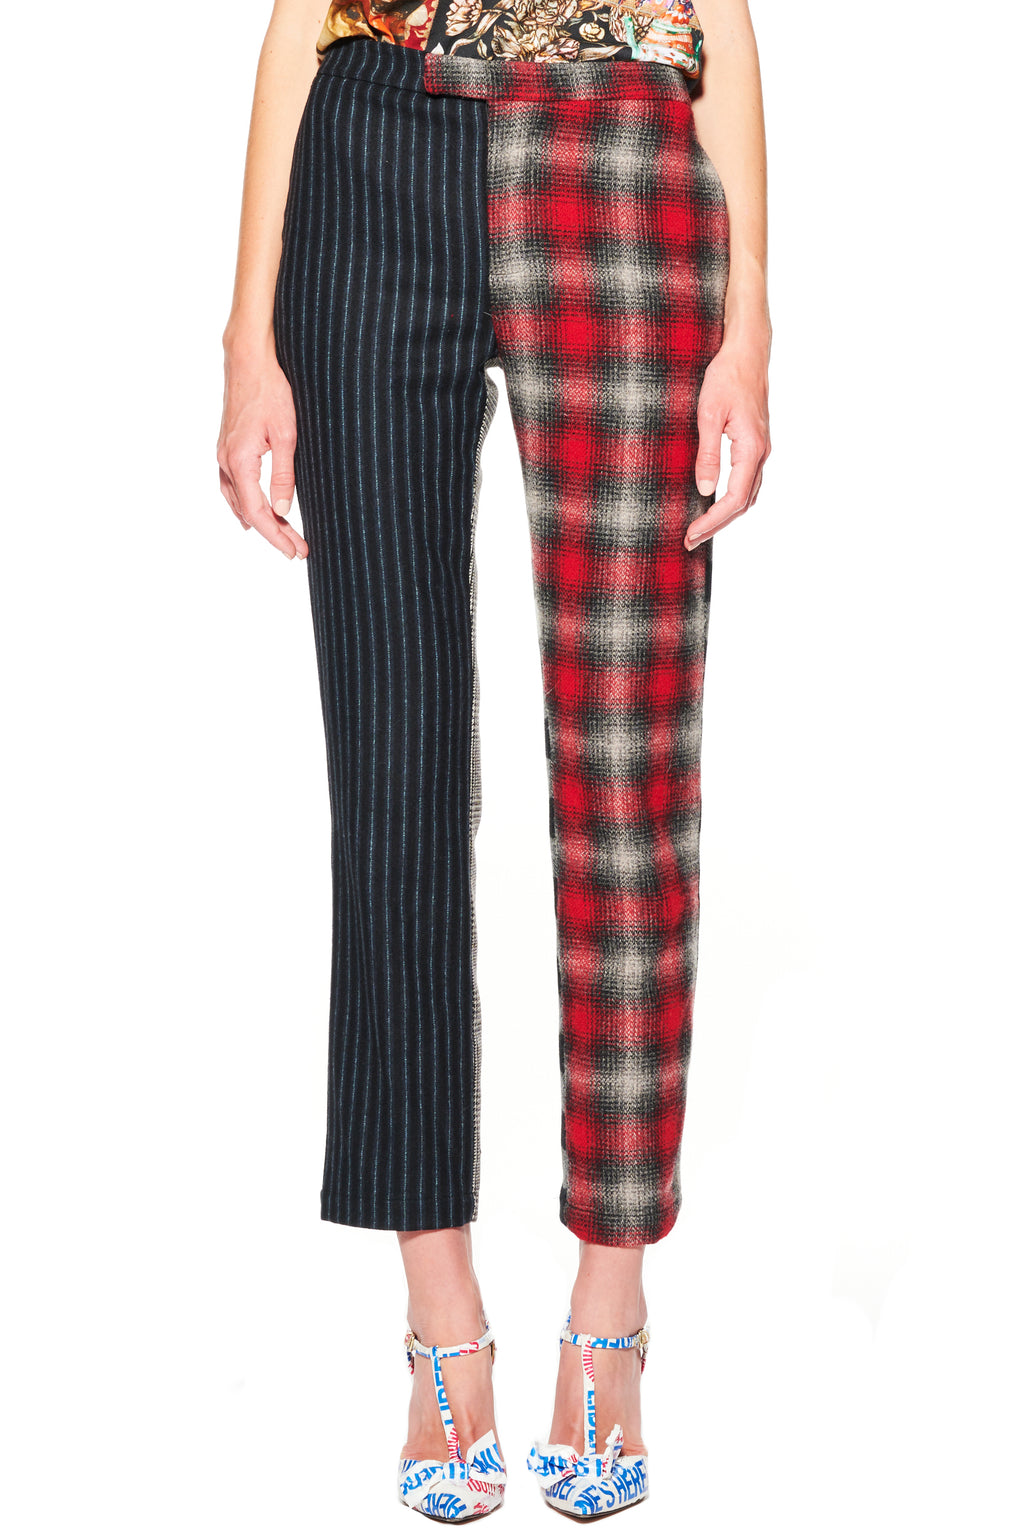 """PLAIDITUDES"" PANTS - Women's Bottoms - Libertine"